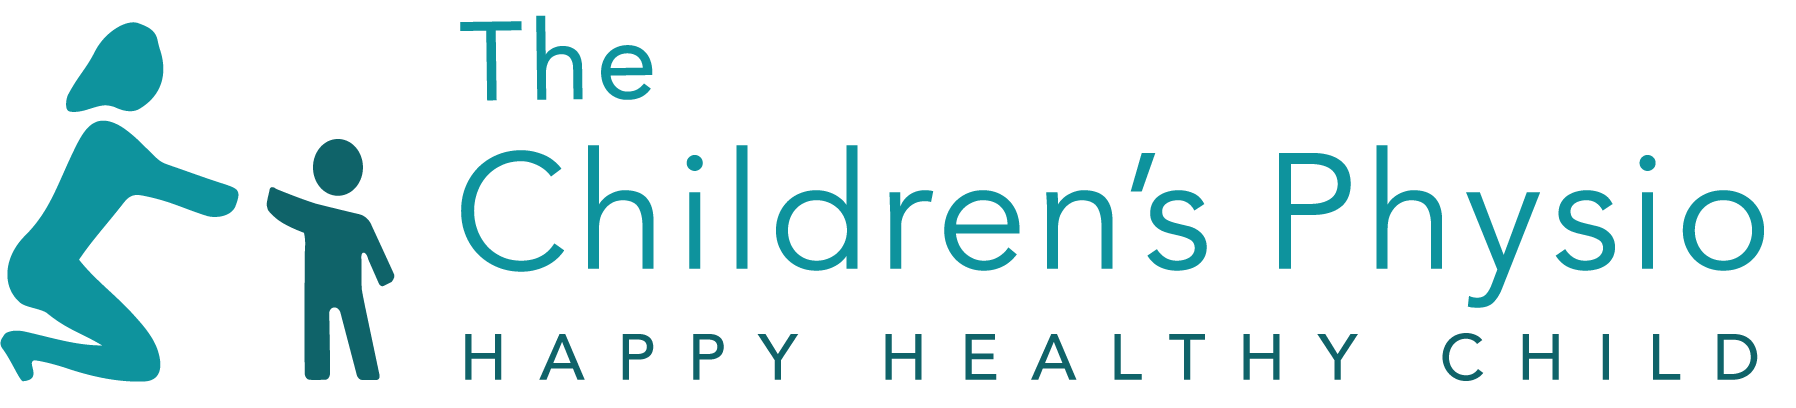 The Children's Physio